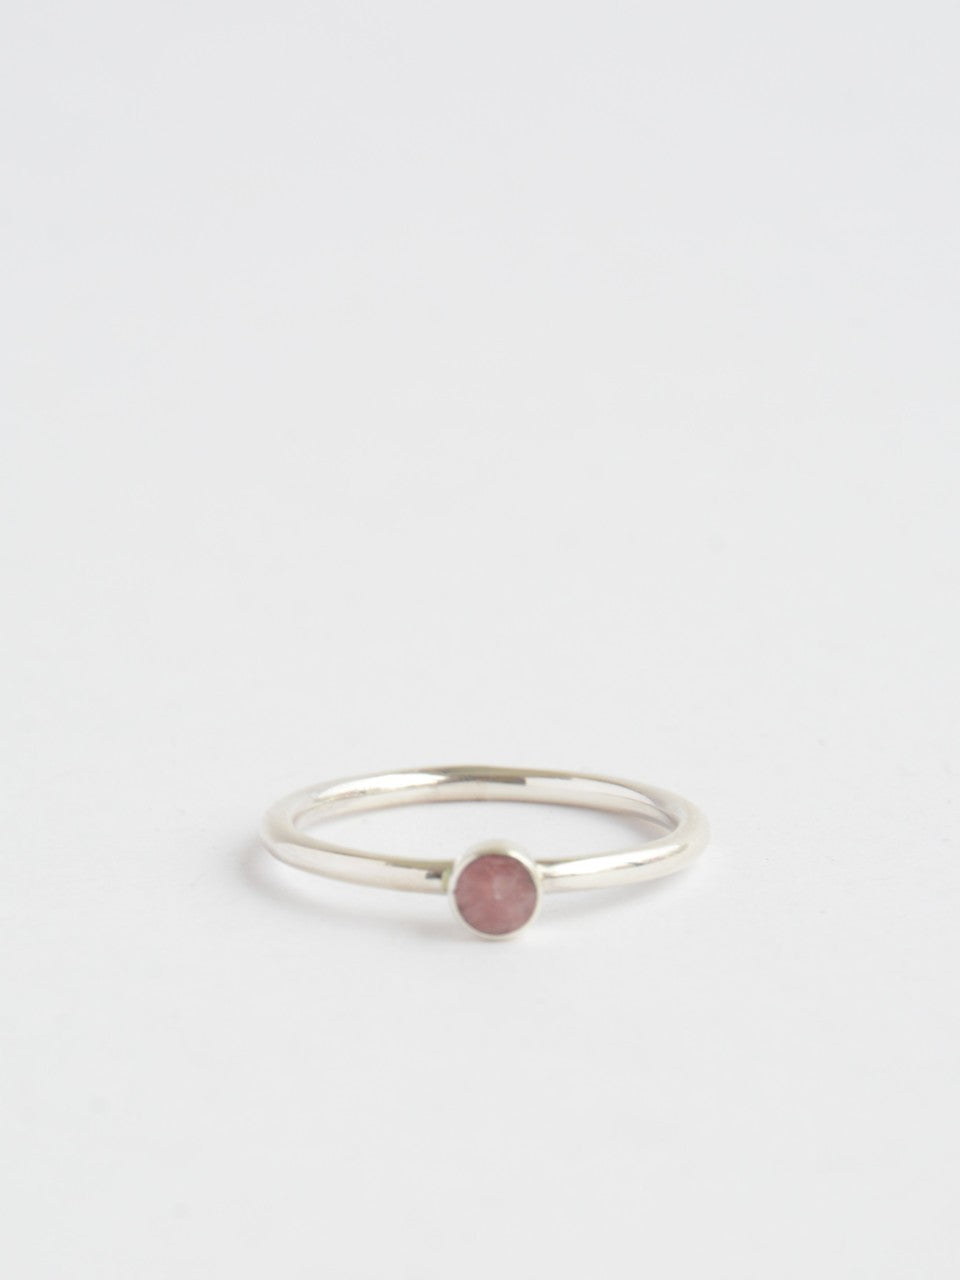 Rosamaria Sterling Ring (pink, blue or black stone) - Small Things Fair Trade